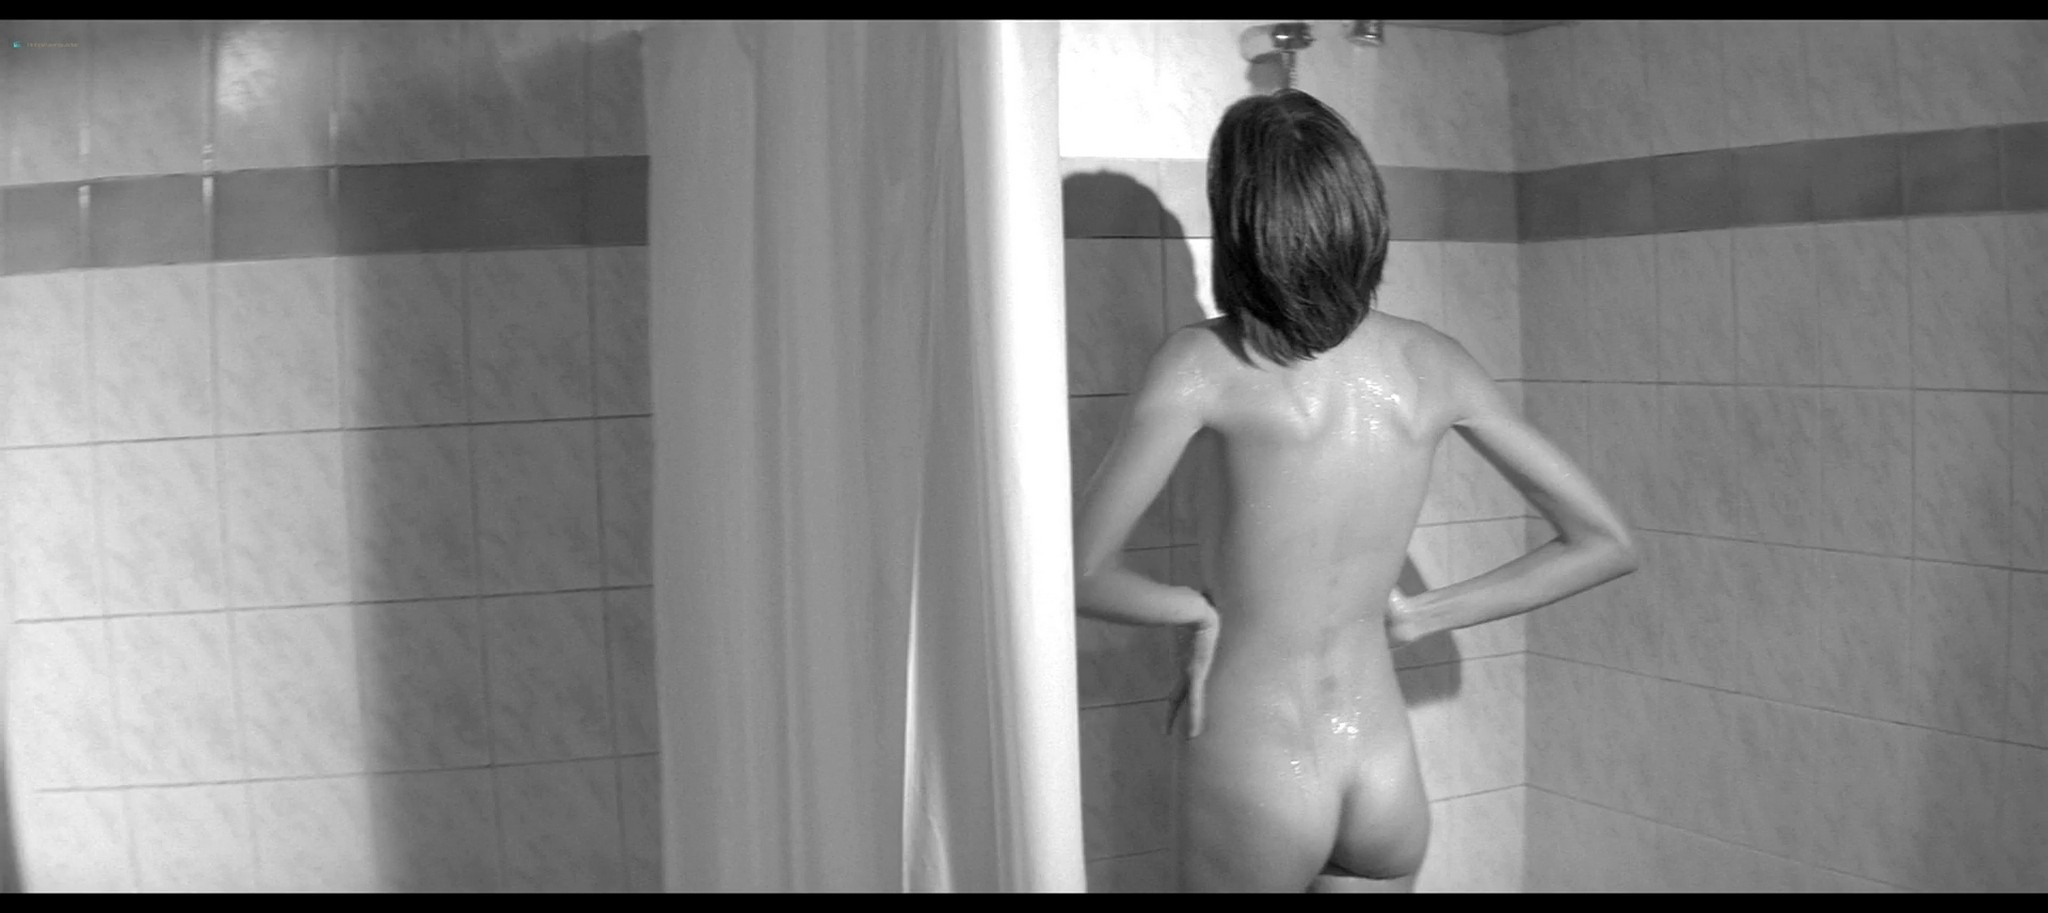 Tanya Ilieva nude hoot sex another nude full frontal Zift BG 2008 HD 1080p BluRay 017